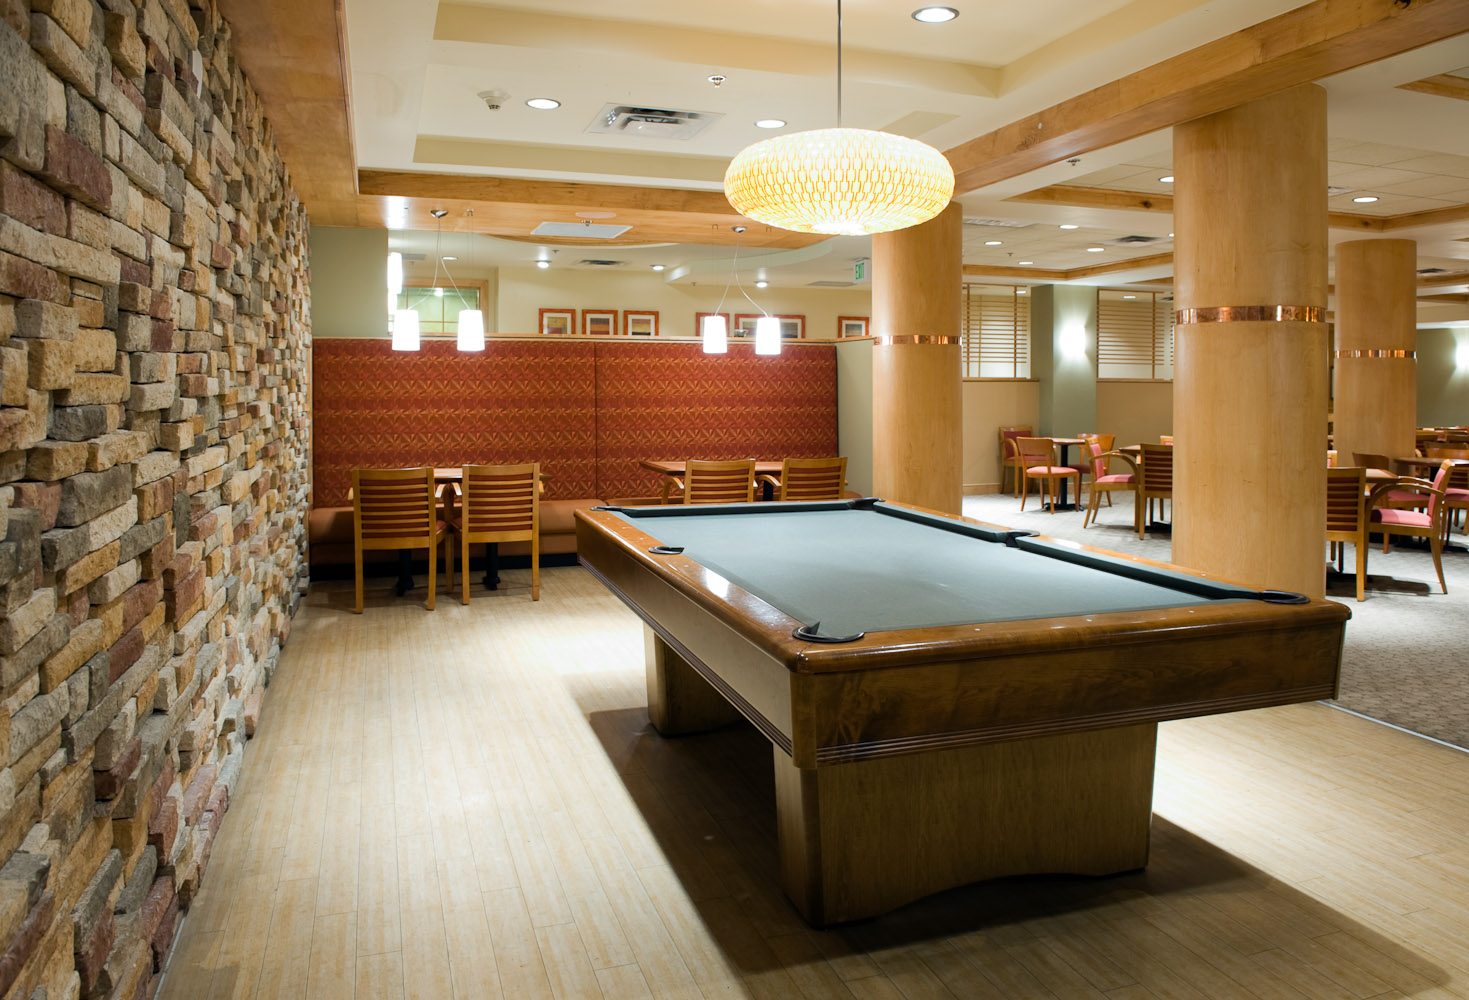 Pool hall by Winnipeg architectural photographer